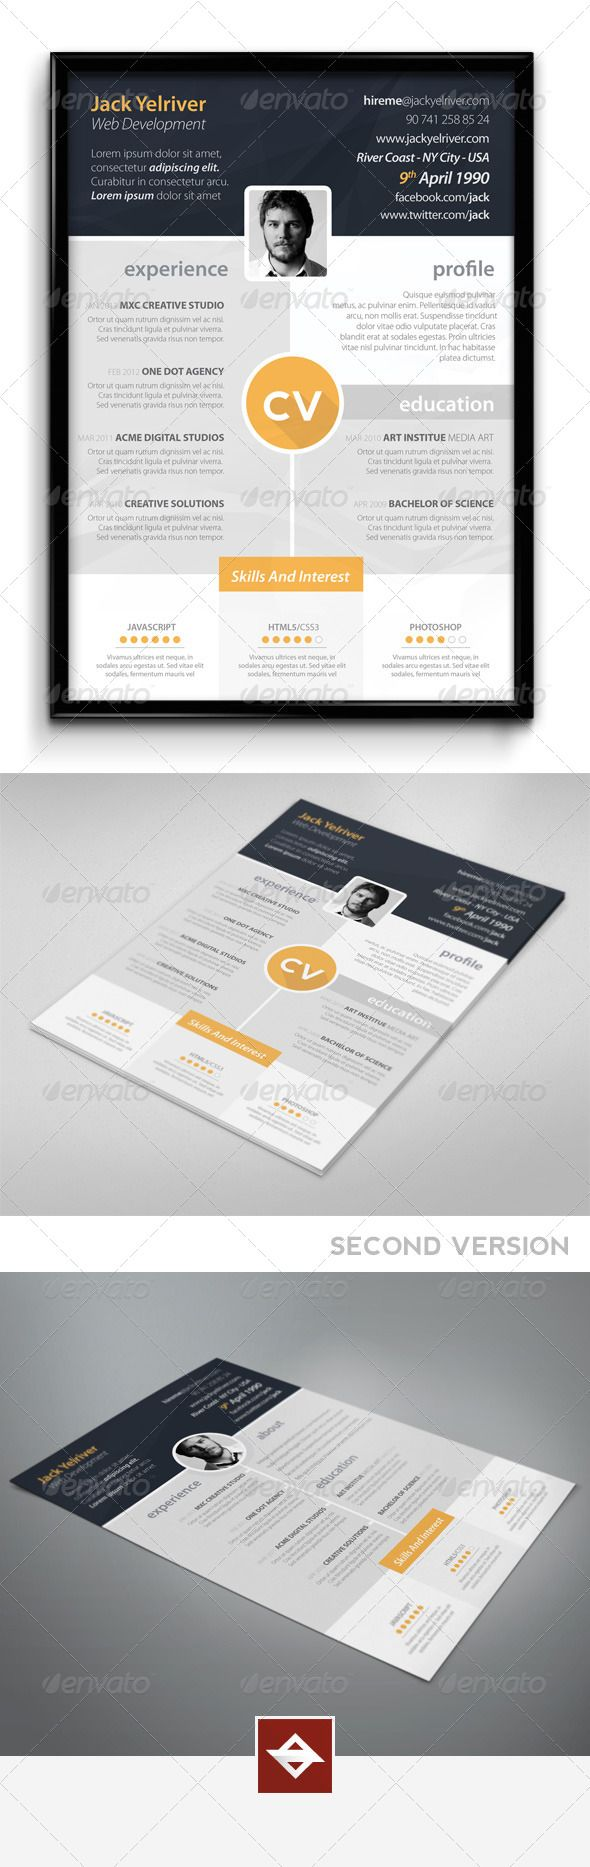 Premium CV — Photoshop PSD #typography #template • Available here → https://graphicriver.net/item/premium-cv/5525344?ref=pxcr